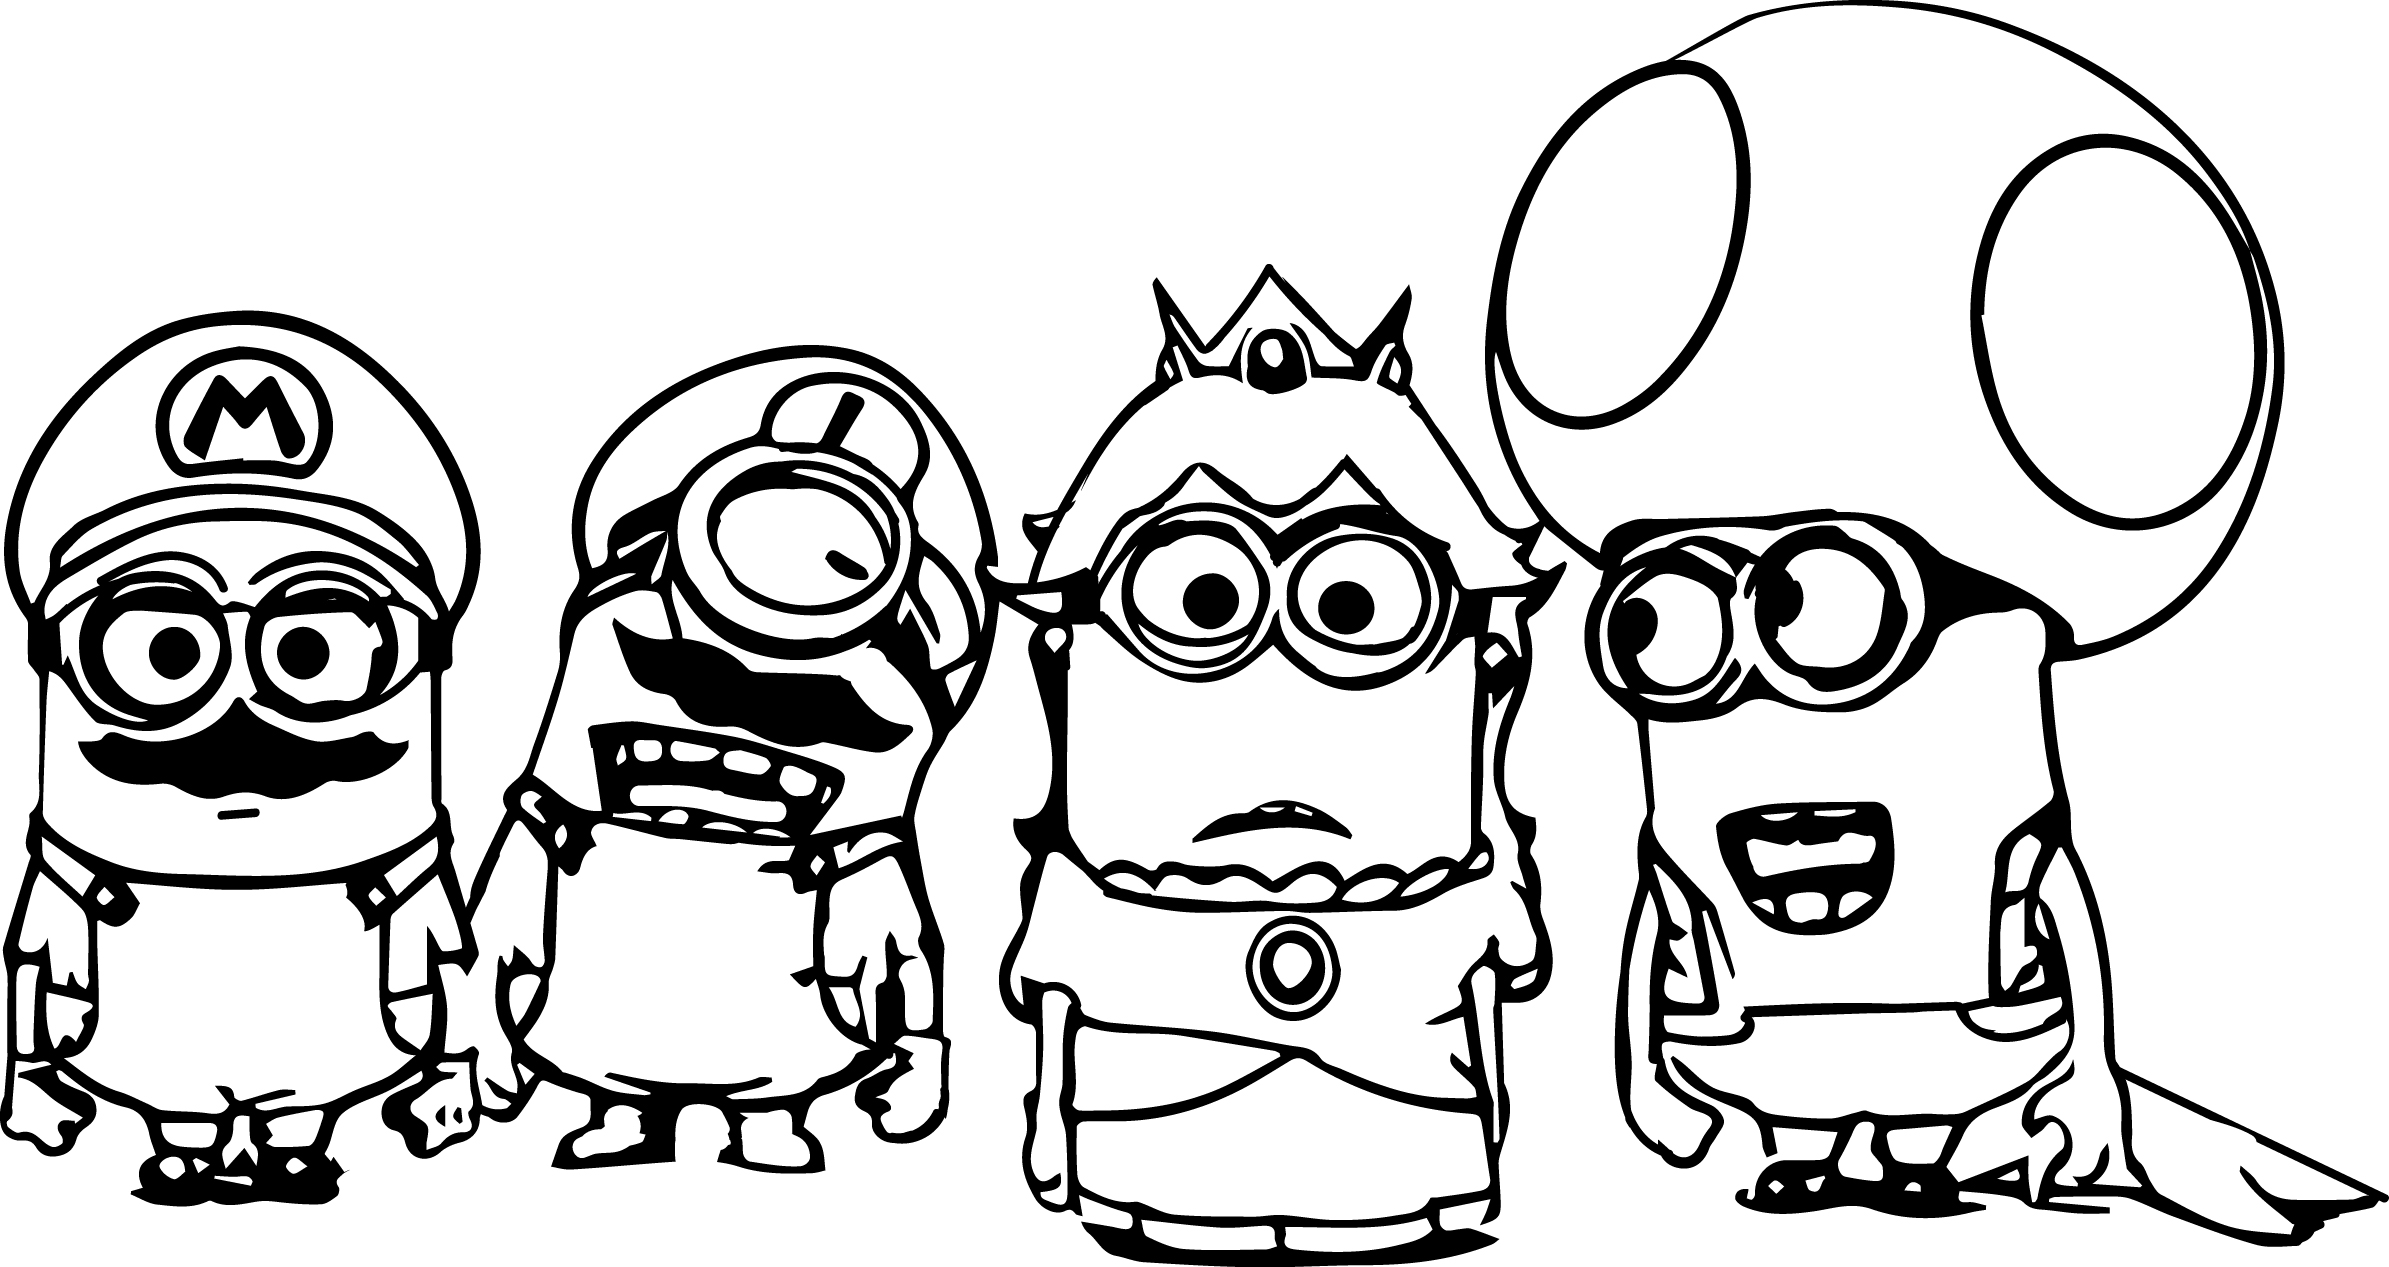 minion coloring pages - Color Pages